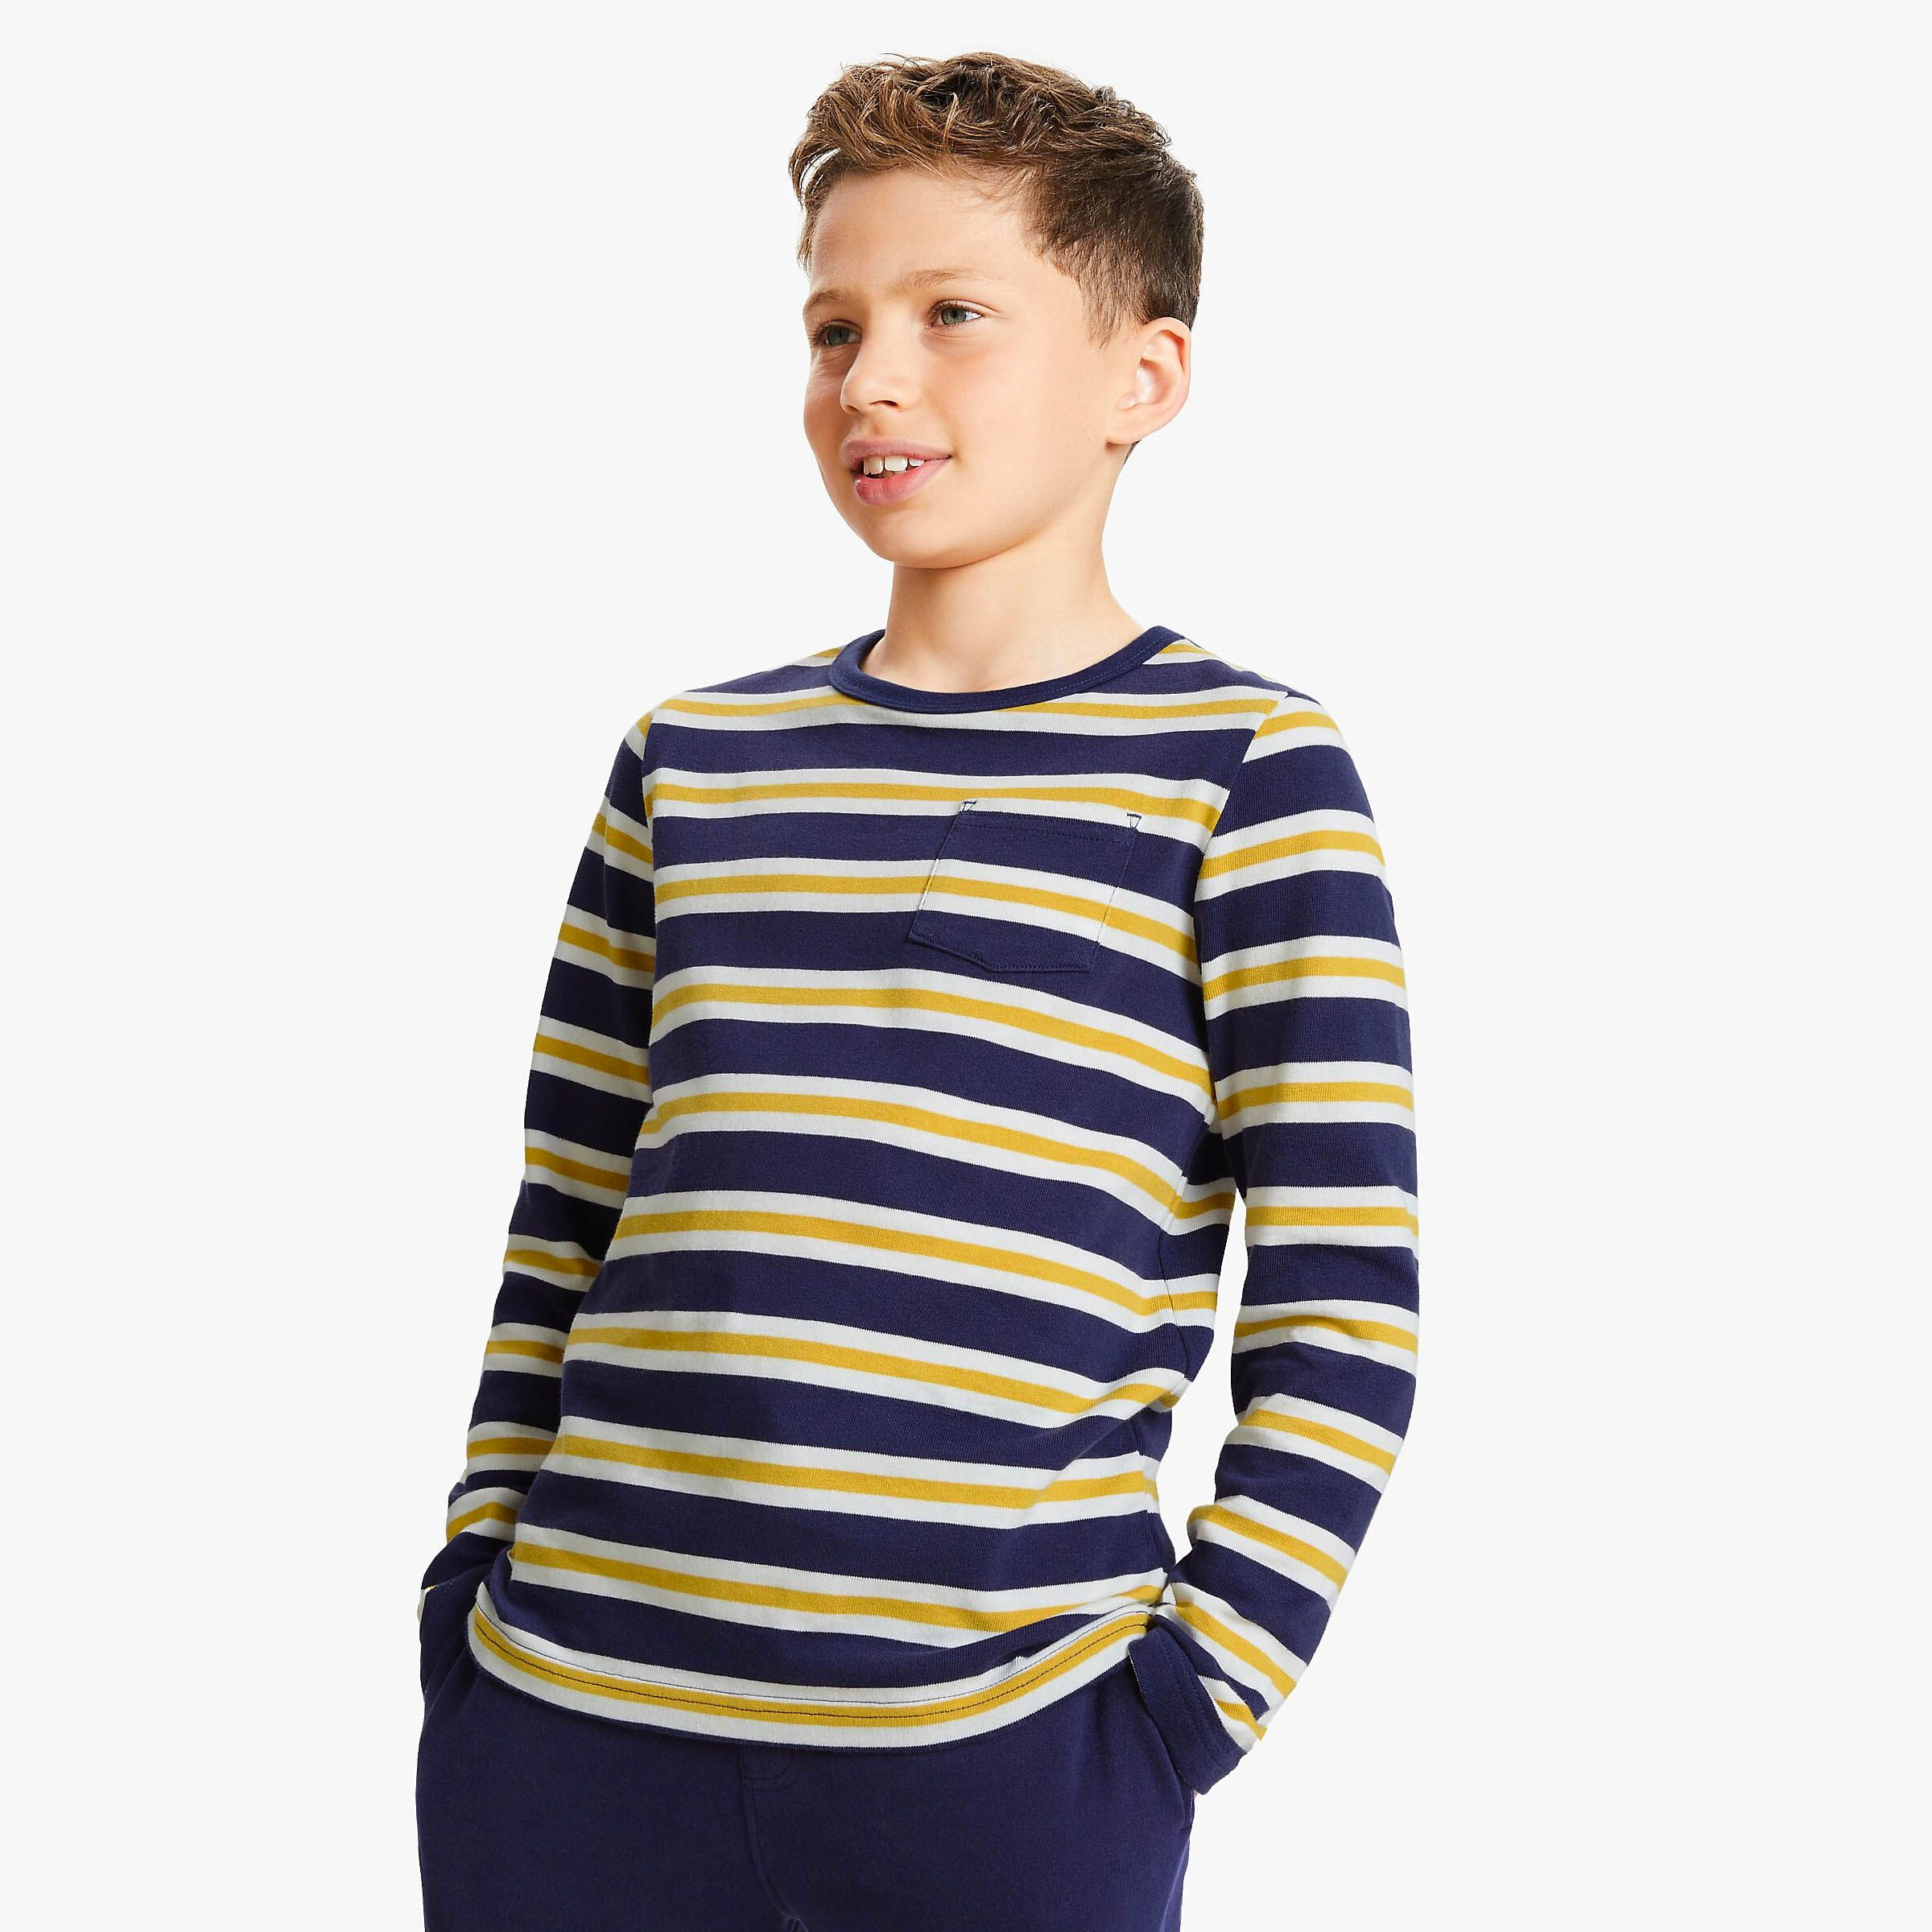 new release value for money cheapest price Boys' Clothes | Boys' Tops, Trousers & Jackets | John Lewis ...